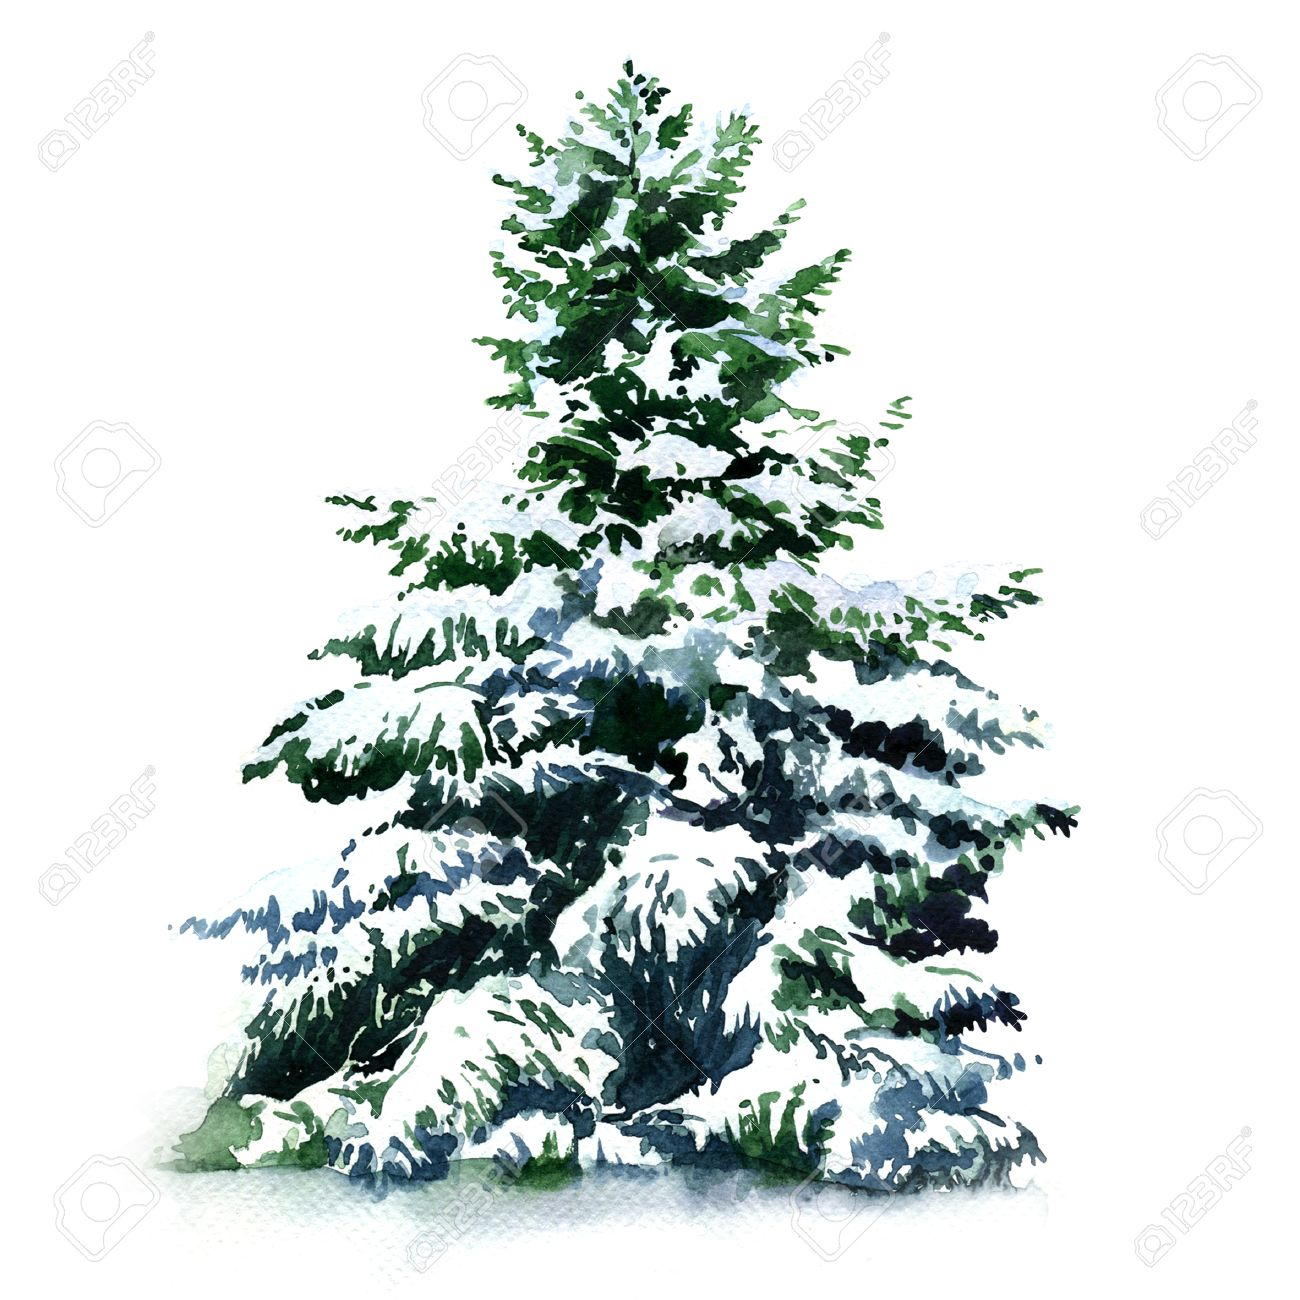 christmas tree covered snow in winter isolated watercolor painting on white background stock photo - Snow Covered Christmas Trees